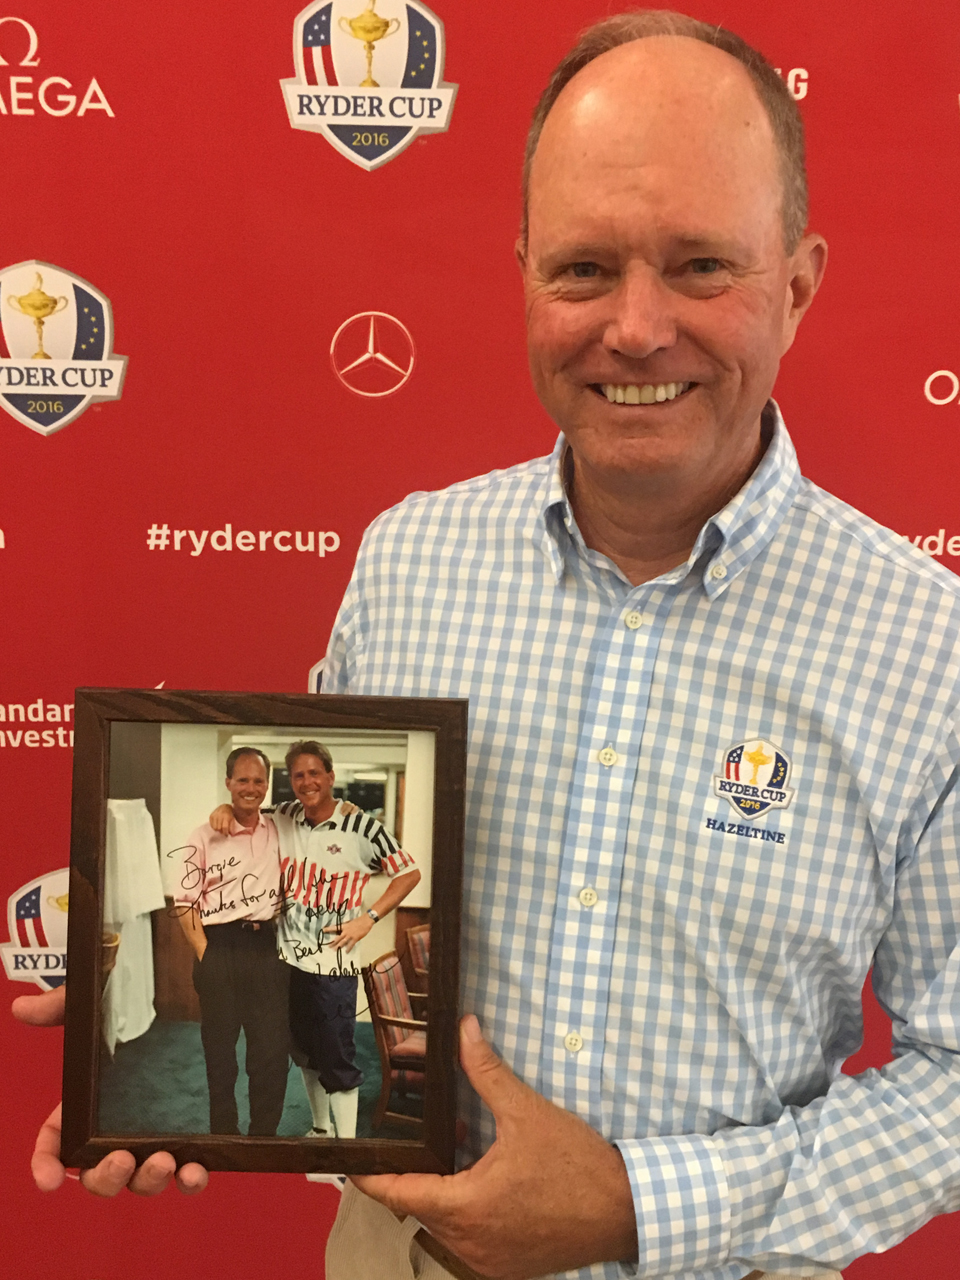 Mike Barge, the director of instruction at Hazeltine, holds up a photo of him and Stewart that they took together after the 1991 U.S. Open, which was autographed by Stewart years later. Barge and Stewart were college teammates at SMU.